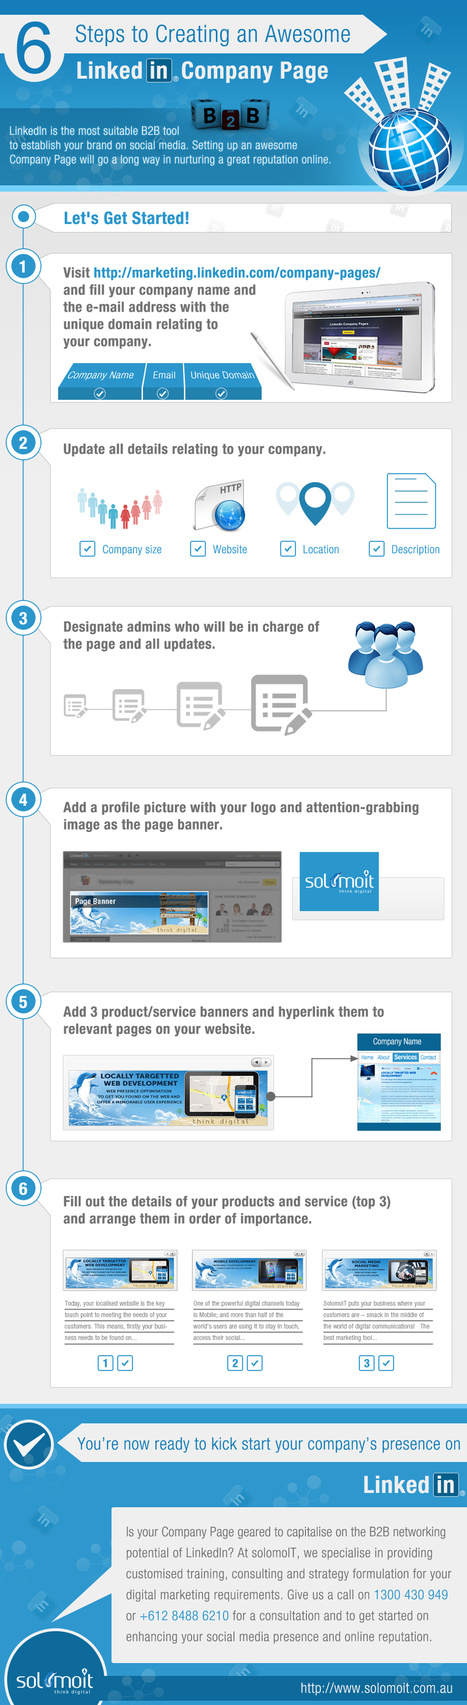 6 Tips to an Amazing LinkedIn Company Page - solomoIT Academy | web design and seo | Scoop.it